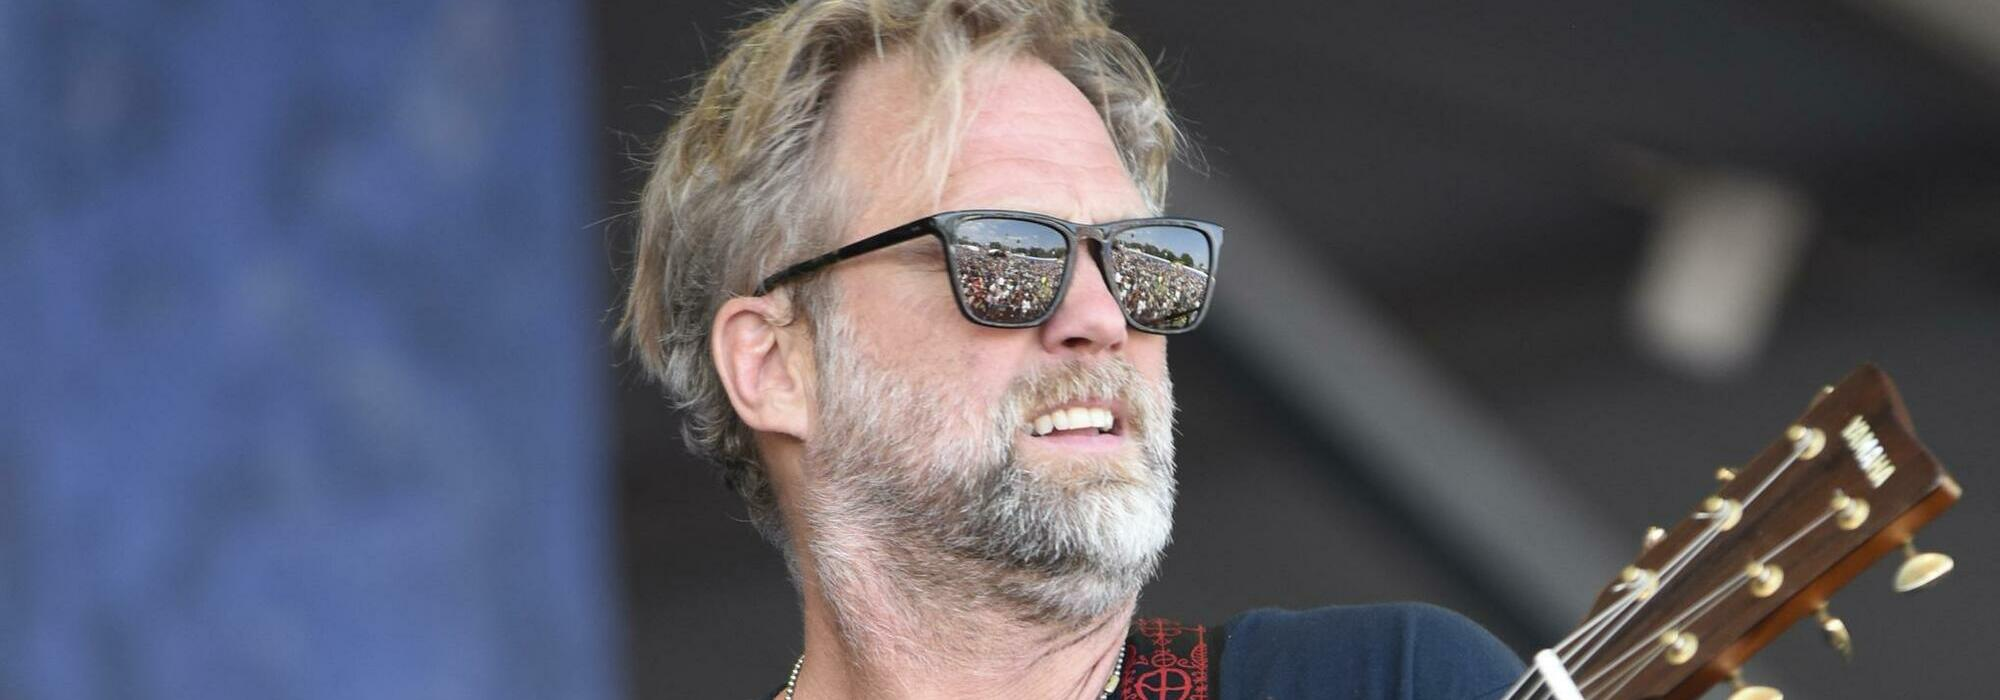 A Anders Osborne live event